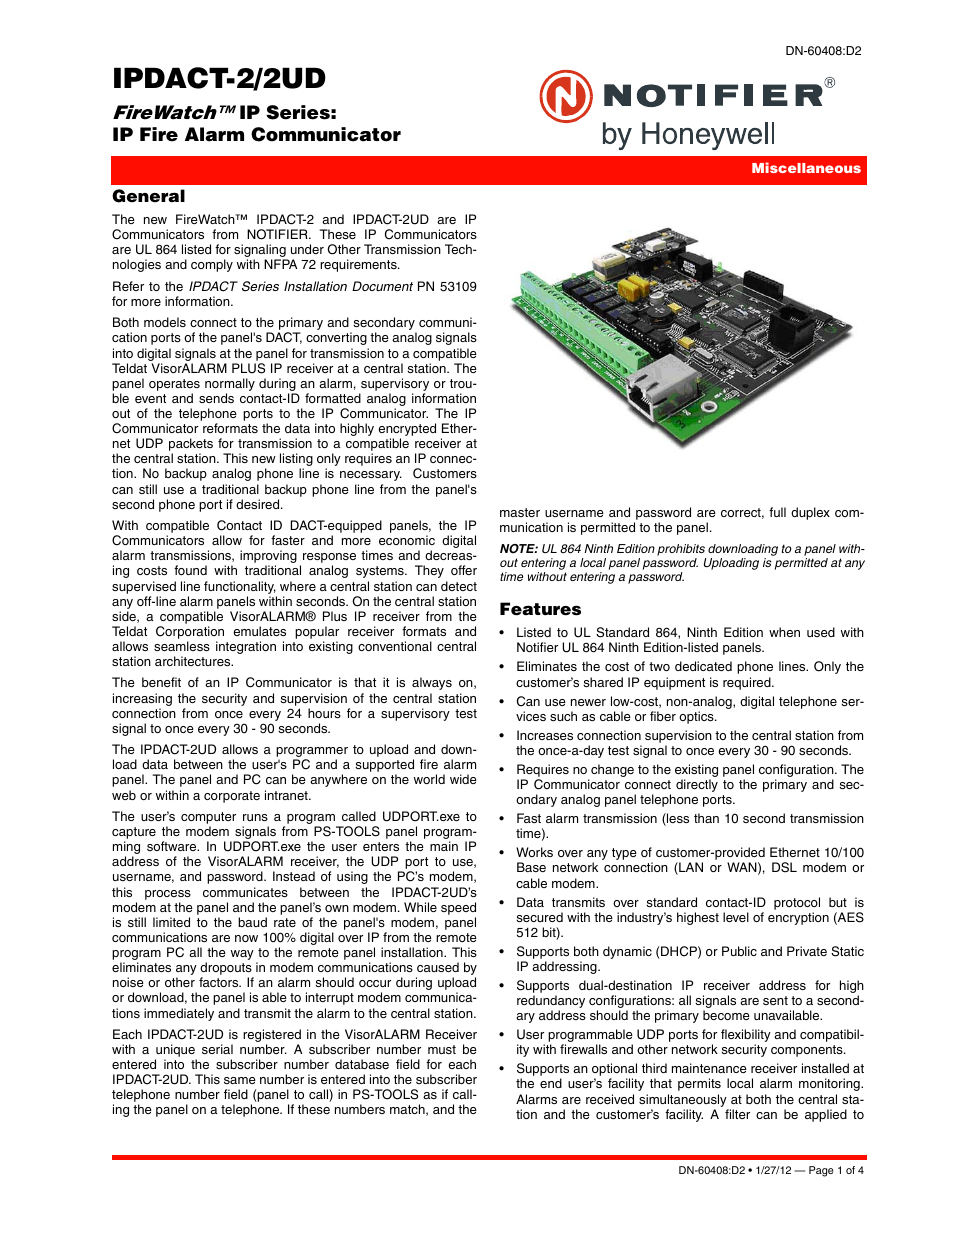 Notifier IPDACT-2/2UD User Manual | 4 pages